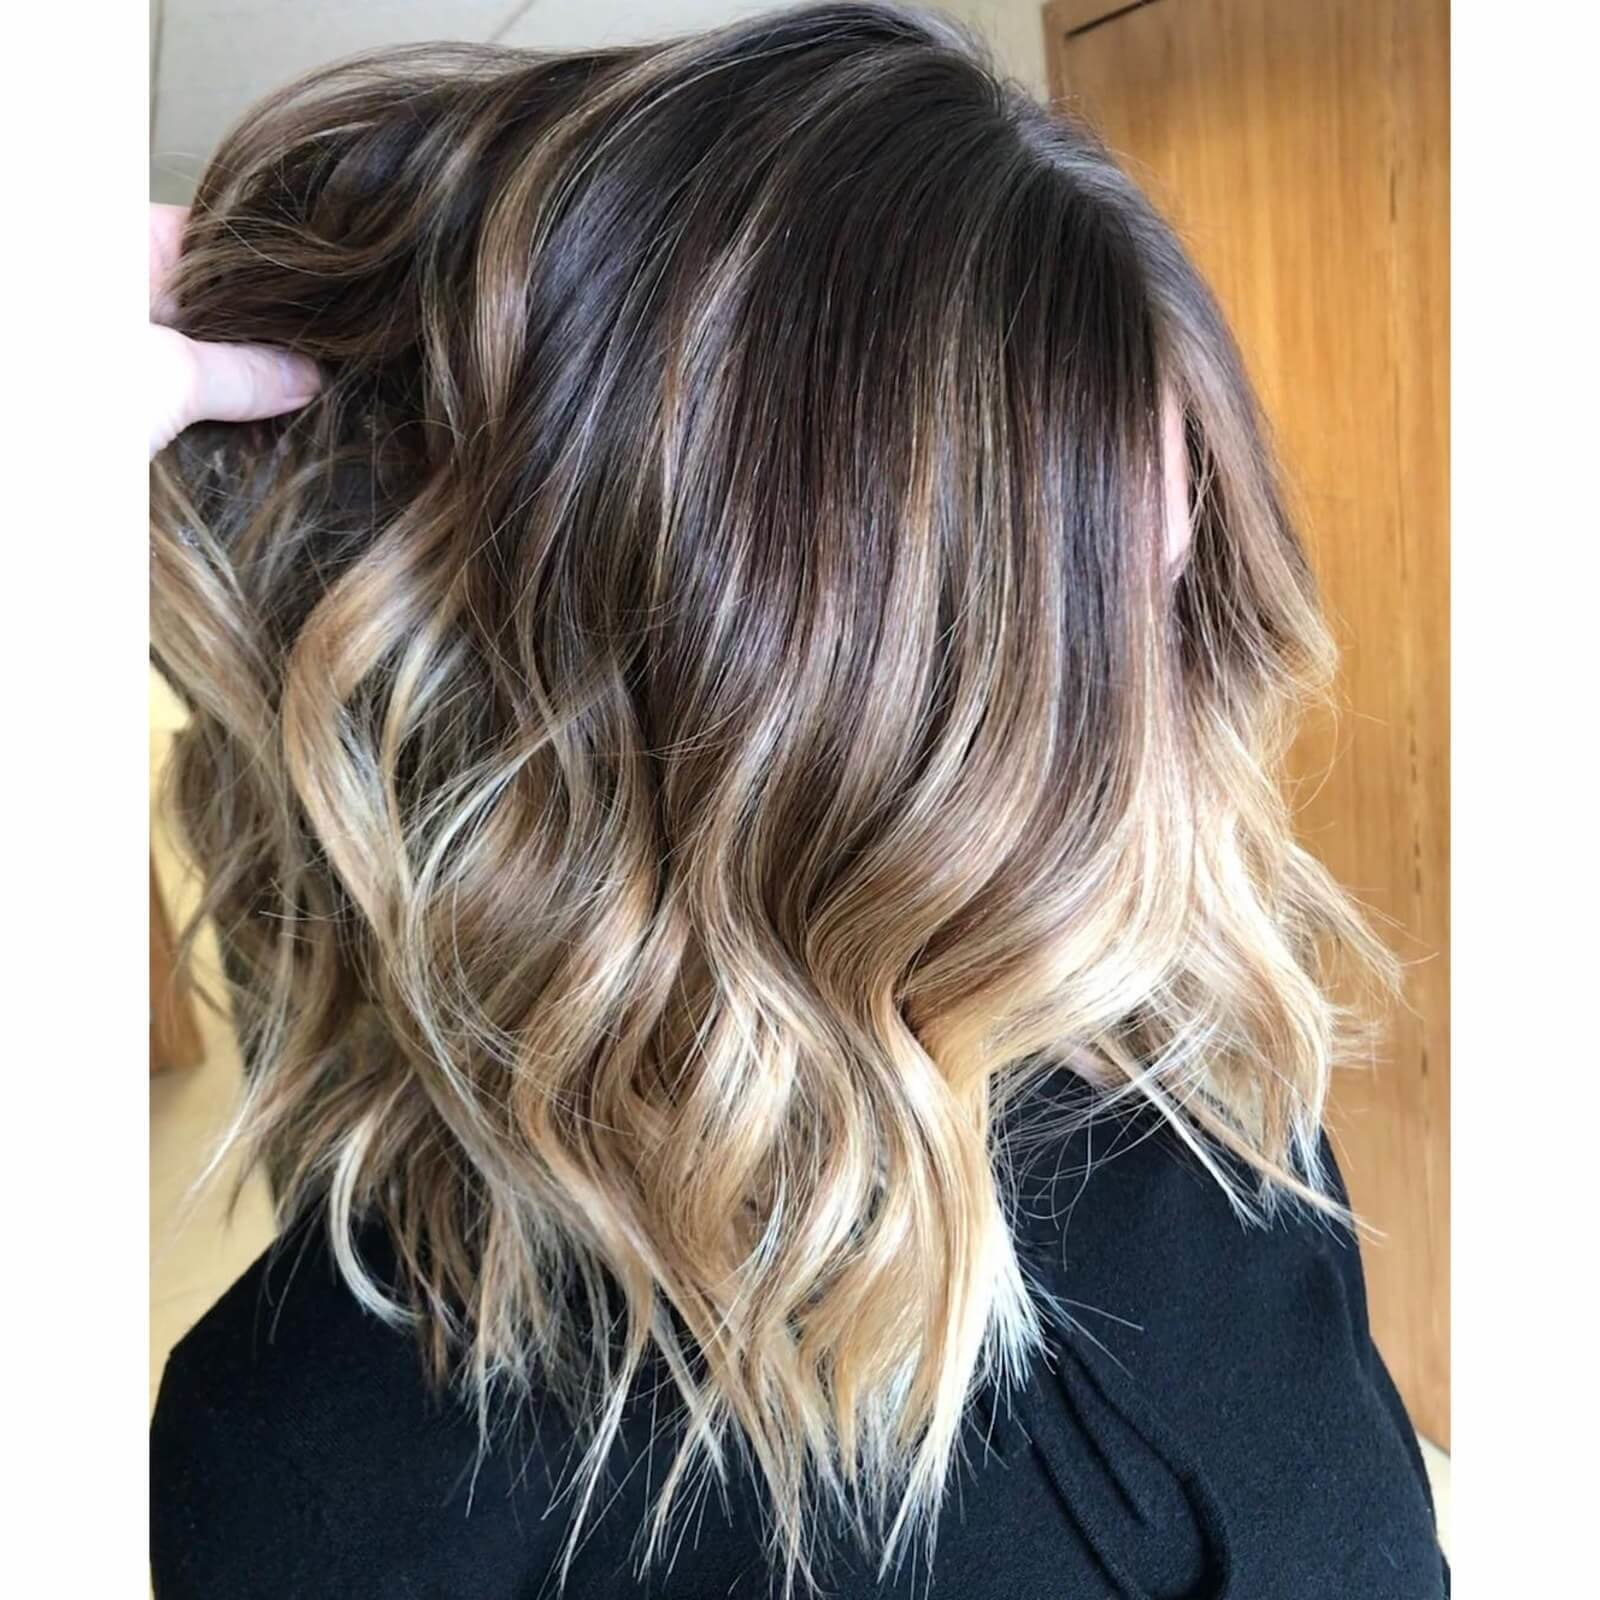 New All You Need To Know About The 2019 Hair Color Trends Ideas With Pictures